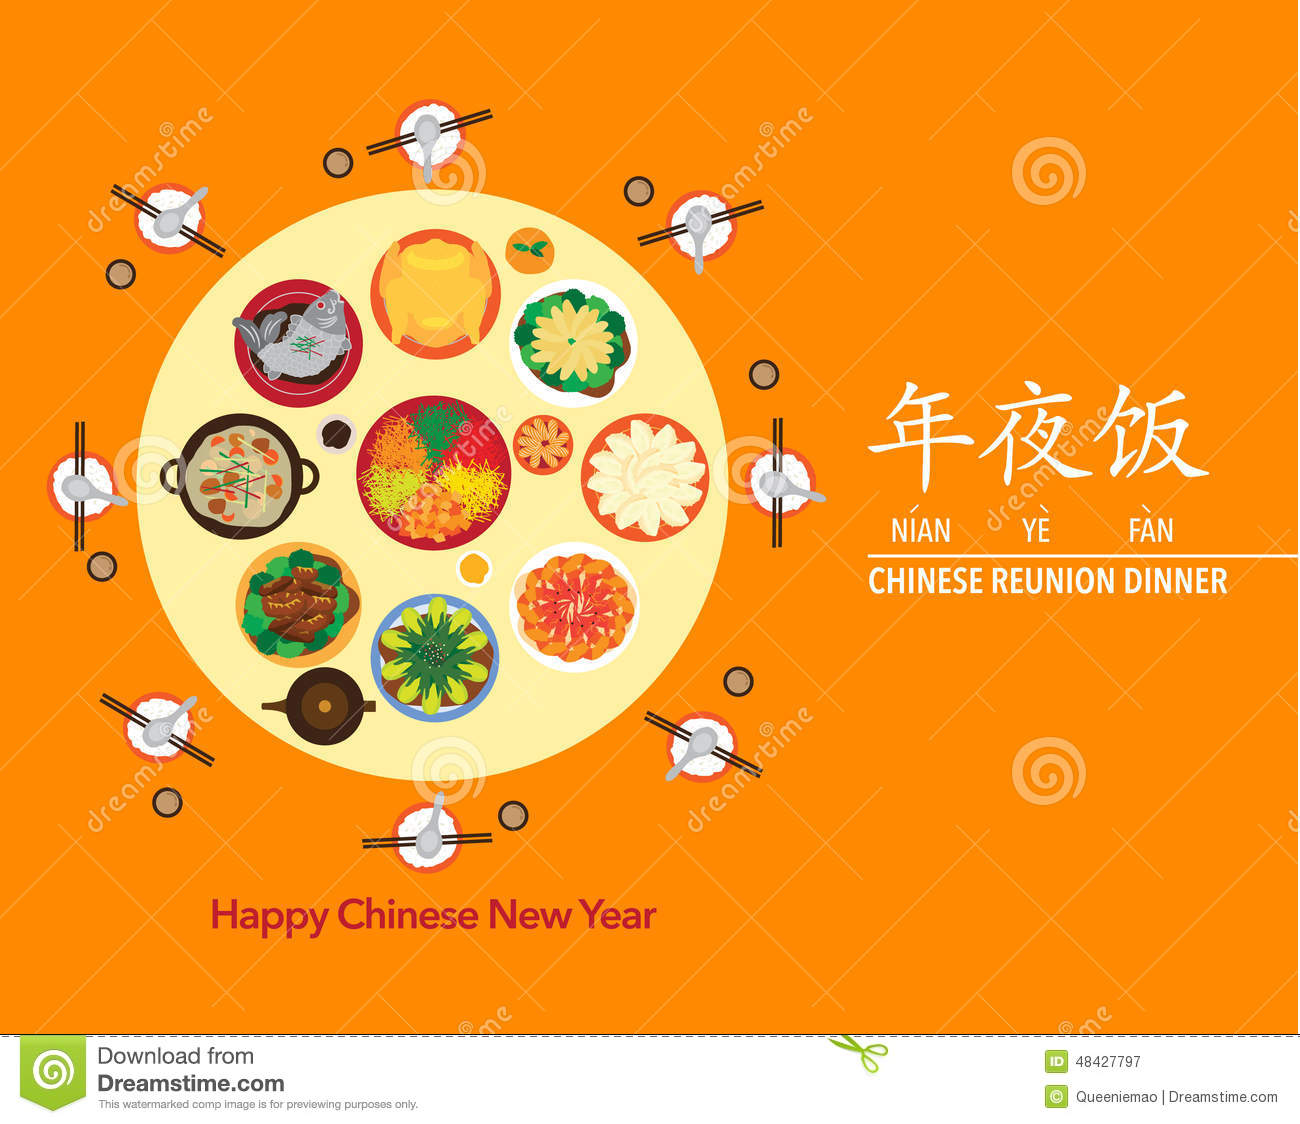 Chinese Calendar Illustration : Happy chinese new year reunion dinner stock illustration